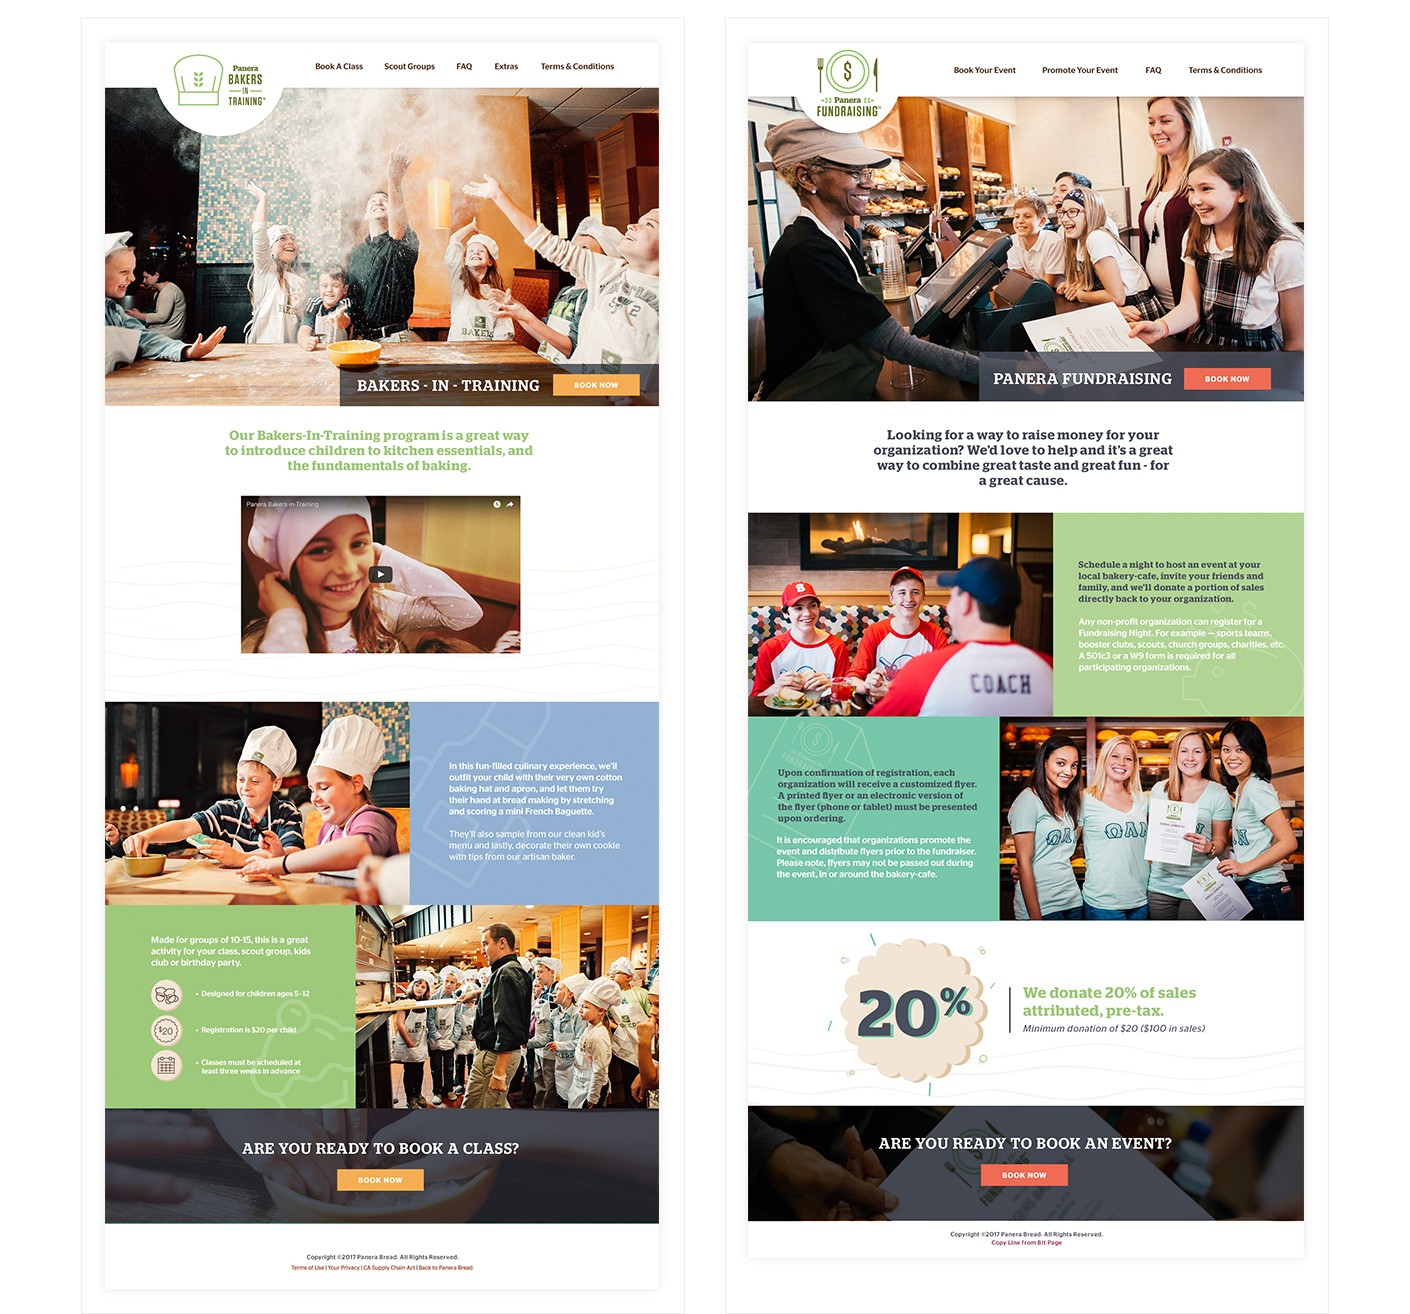 We designed two mobile responsive landing pages for Panera Bread Company to promote their Panera Fundraising and Bakers in Training events. The landing pages were developed to allow users to register for events, and it ties directly in with the web application that was developed to manage the events.